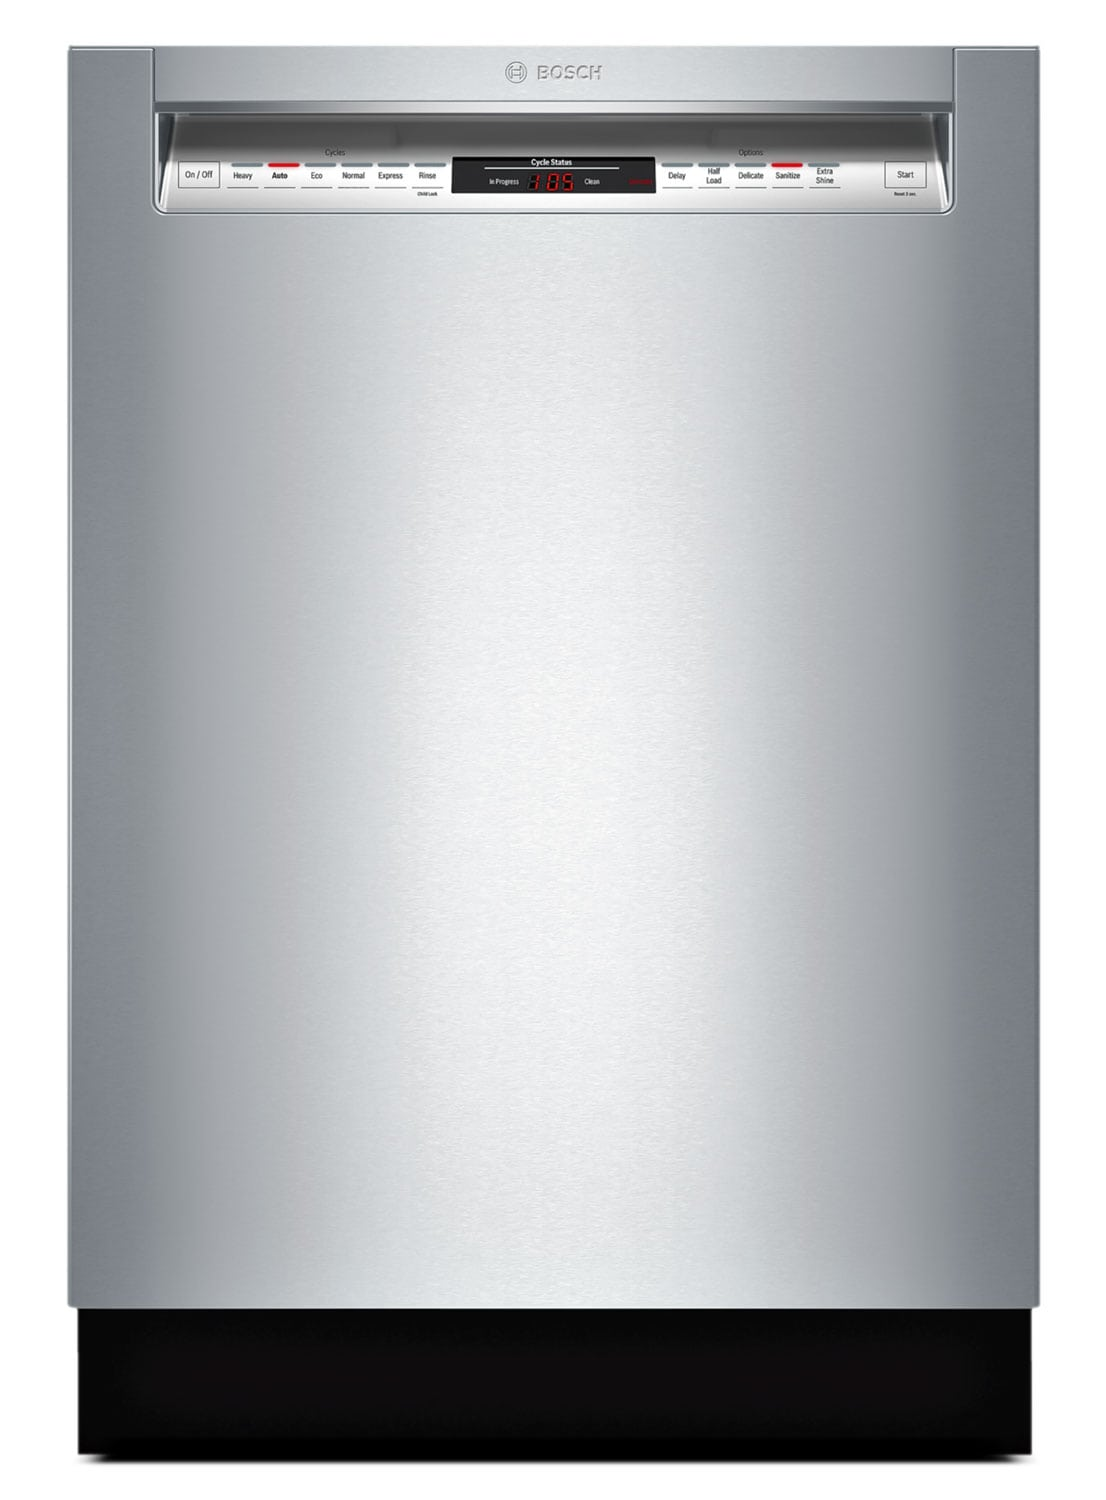 """Bosch Stainless Steel 24"""" Dishwasher - SHE68T55UC"""